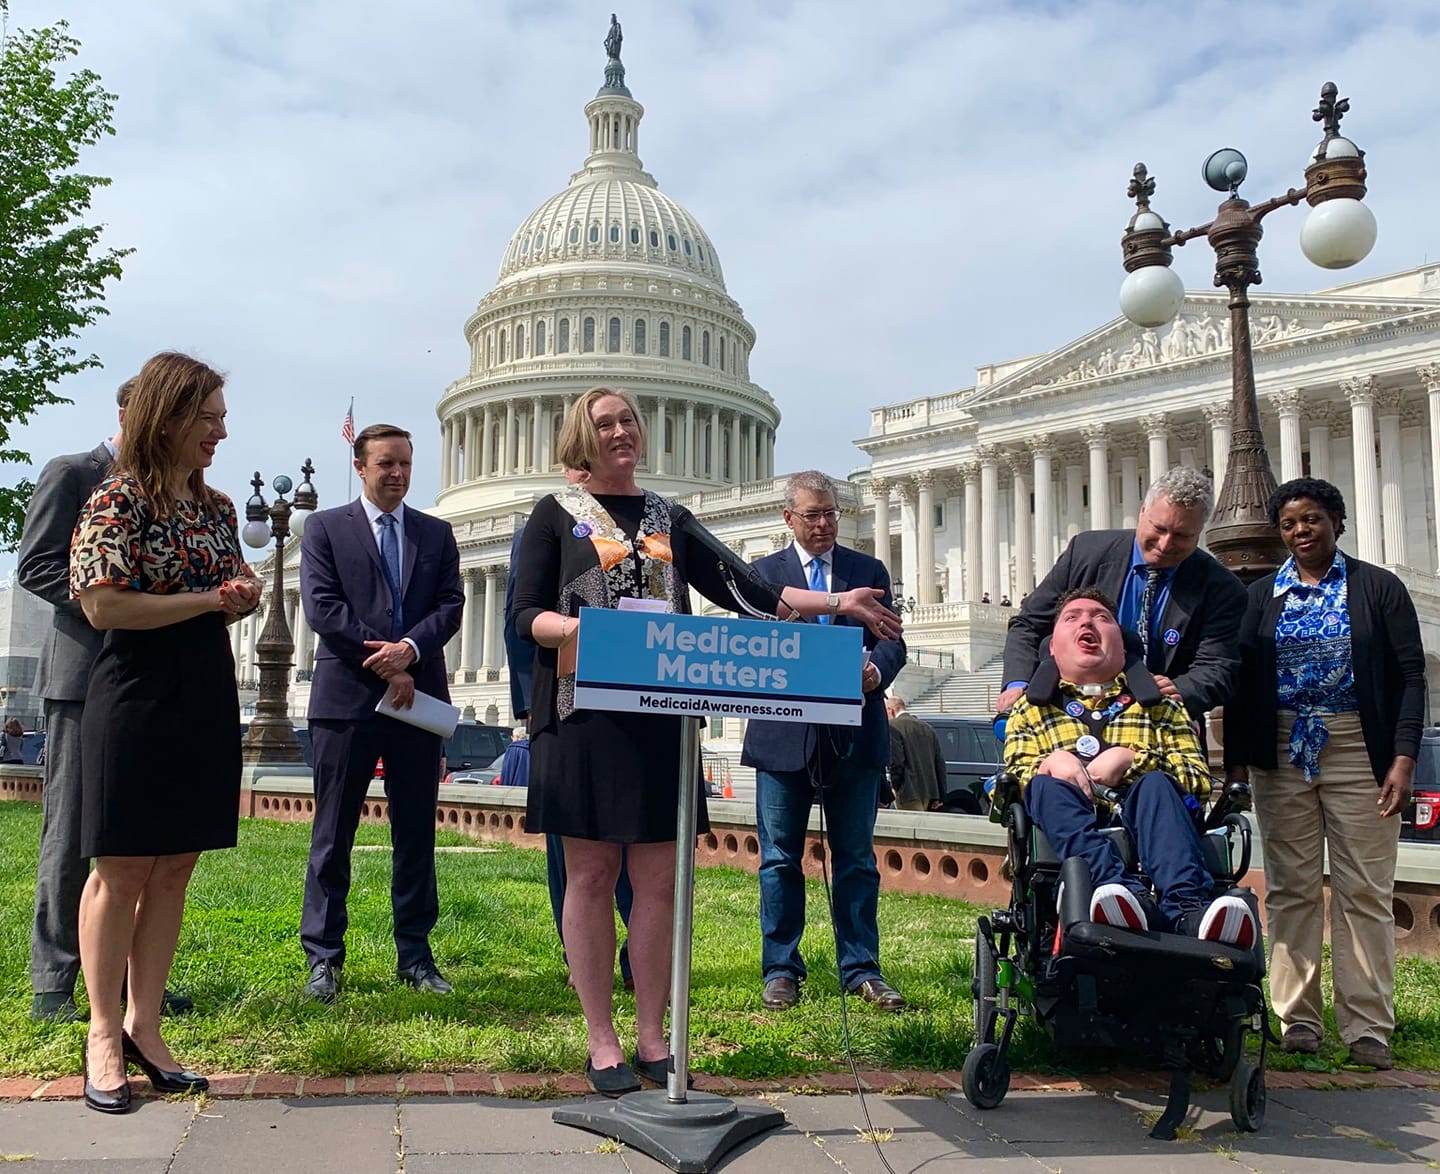 Jeneva with her son Robert and husband Roger advocating for Medicaid in front of the Capitol with members of Congress and Little Lobbyists mom Laura.